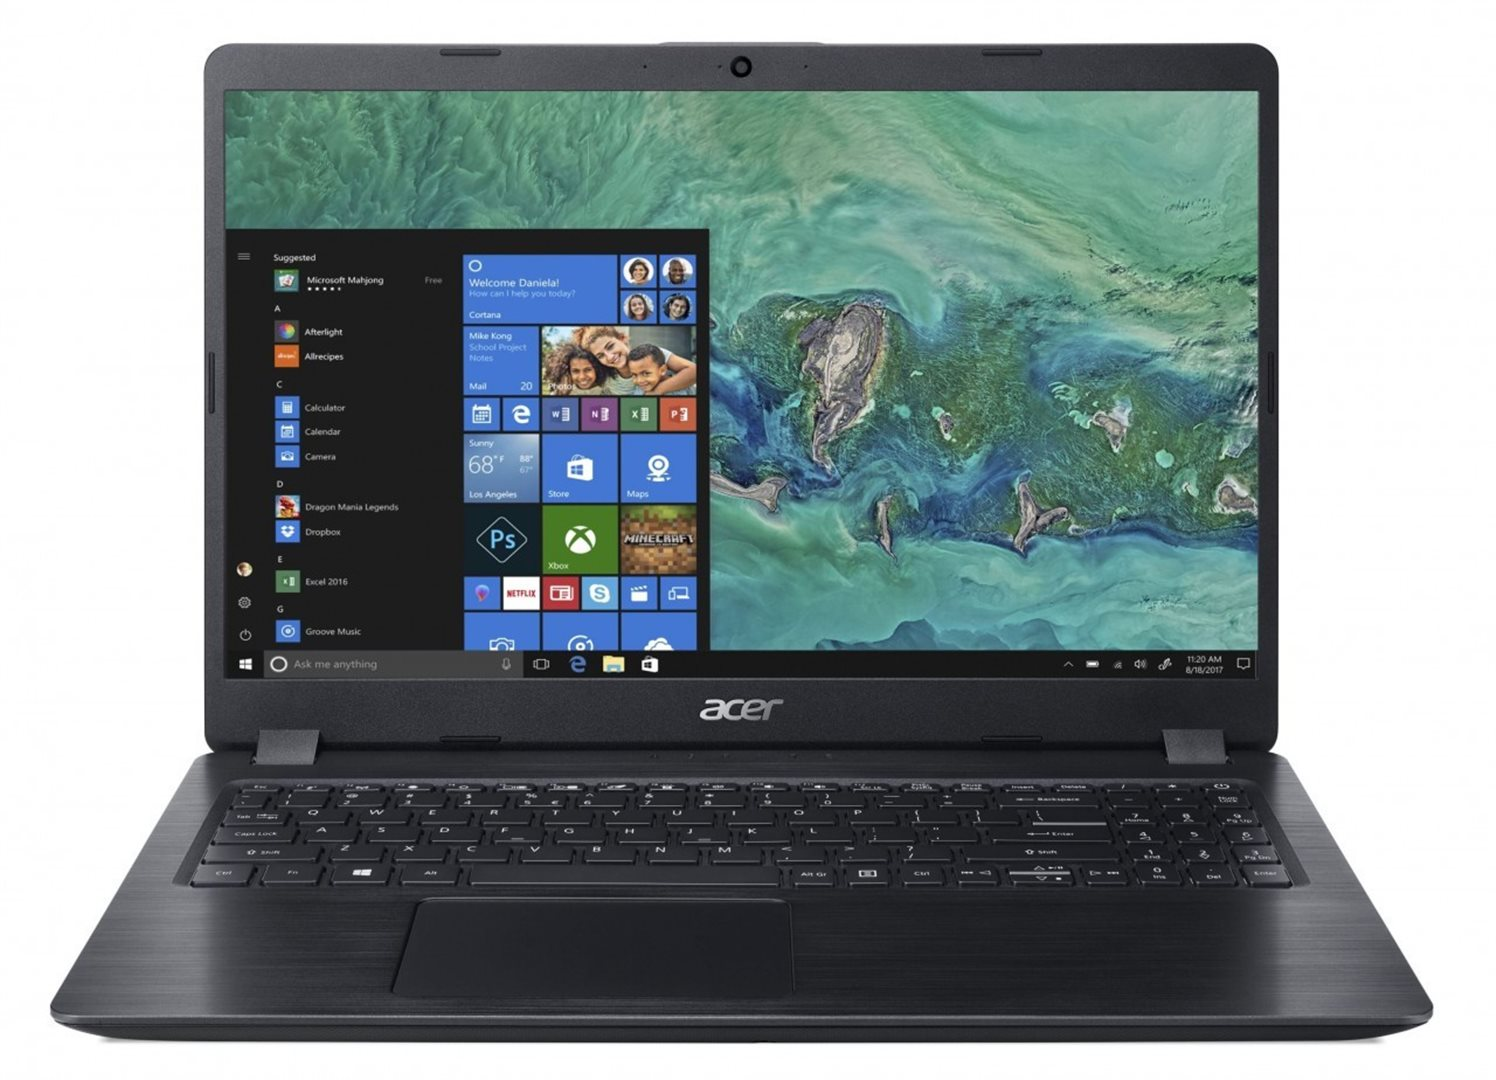 ACER ASPIRE E300 VIDEO DRIVERS DOWNLOAD (2019)